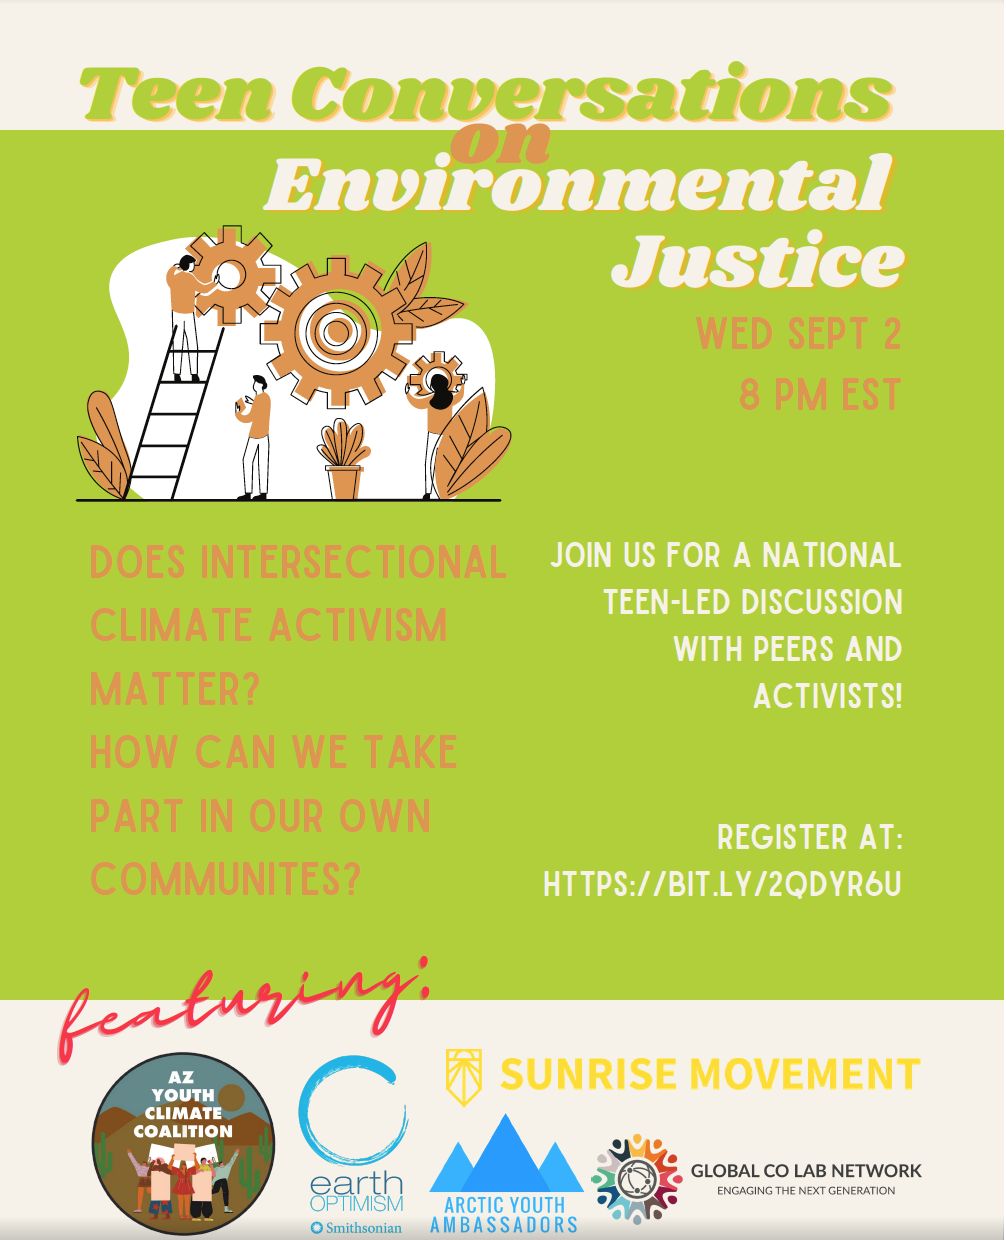 Image shows flyer of a monthly Teen Conversation on Environmental Justice